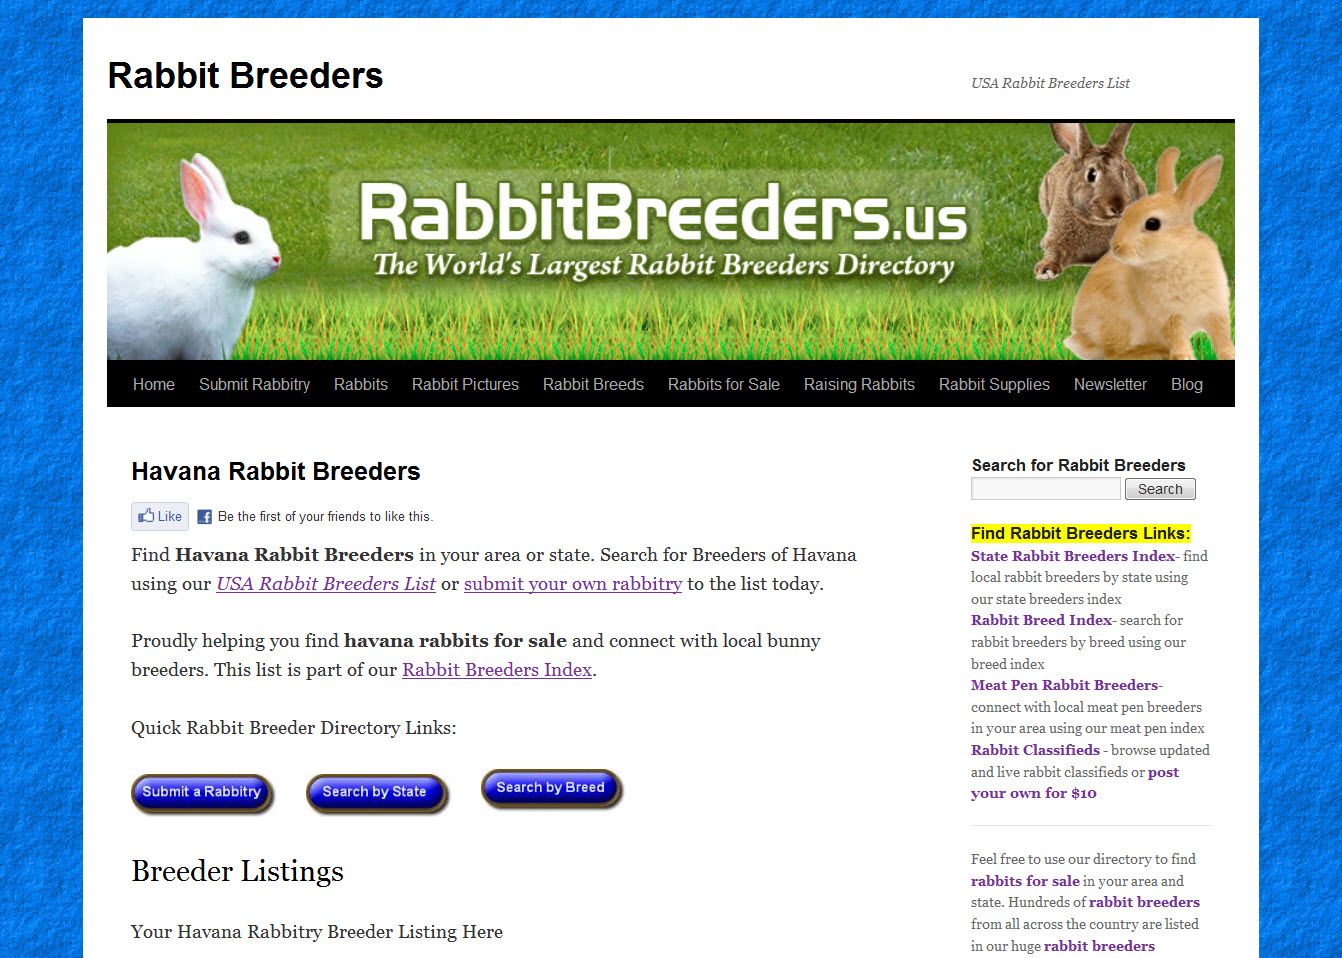 Havana Rabbit Breeders